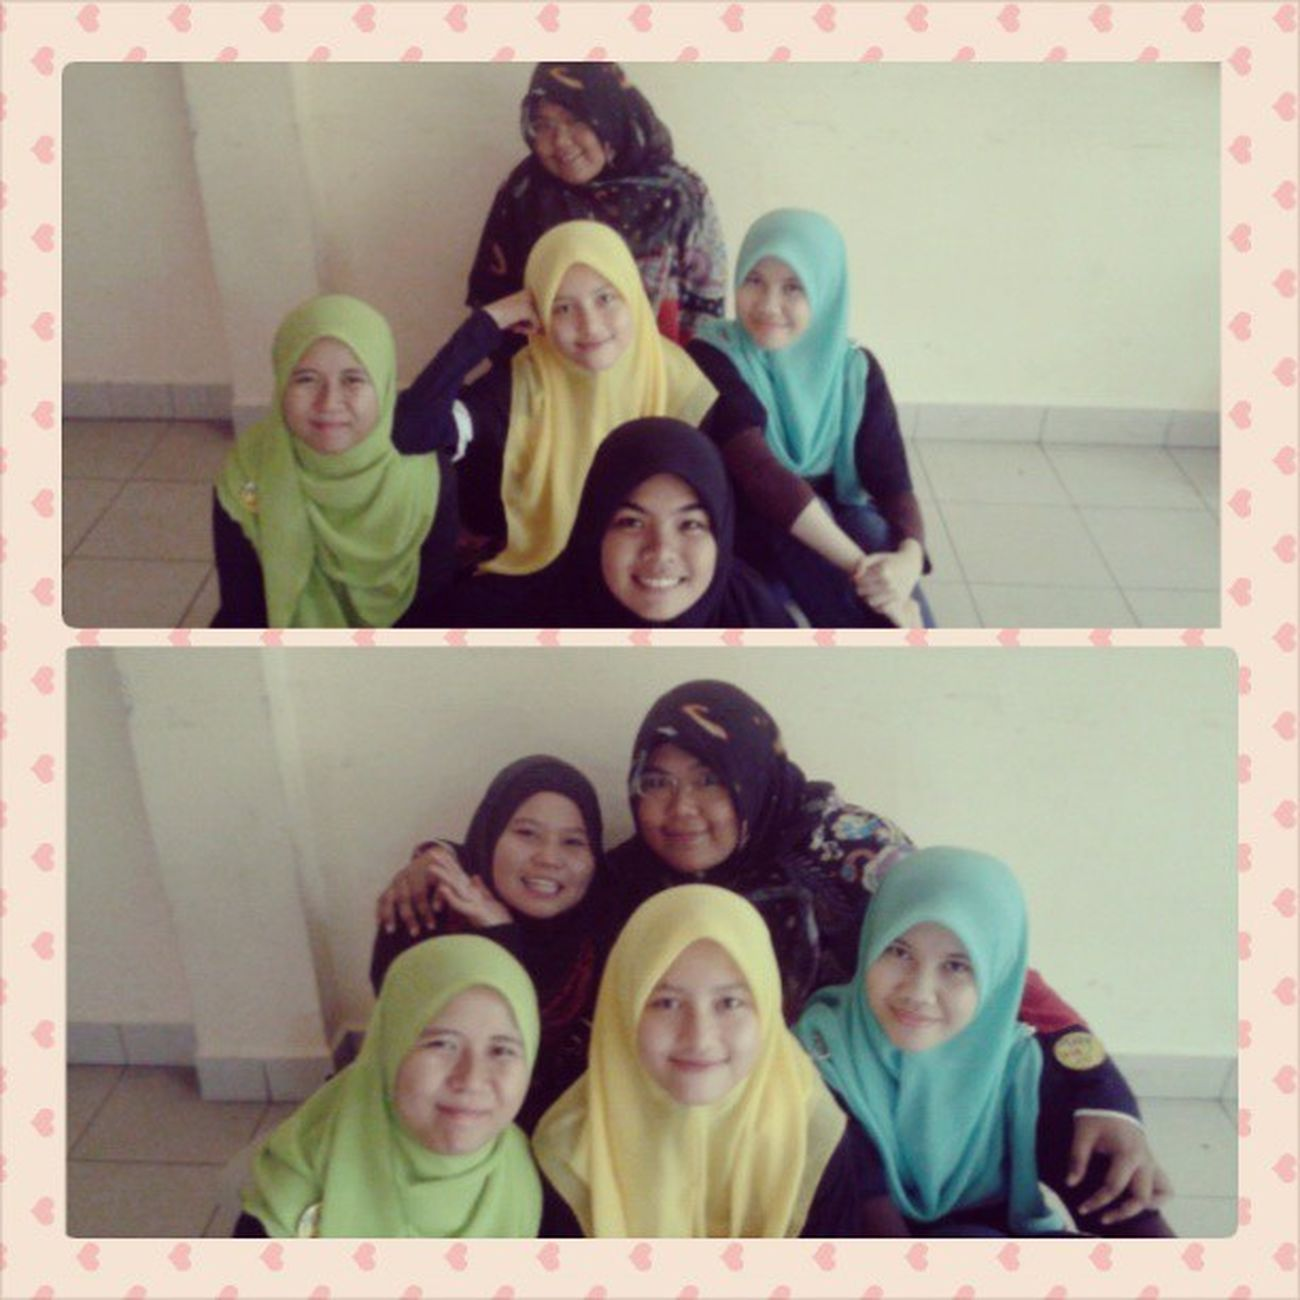 "Because really I love these girls so much laaa xoxo muahhhh * gedik pulak saye * hehe.. *Aiman, Hana, Jihan, Maziah, Husna and me :"") Friends JPK Seki KolejInderaSakti uitmperak ukhwahfillah sisters bonding love family"